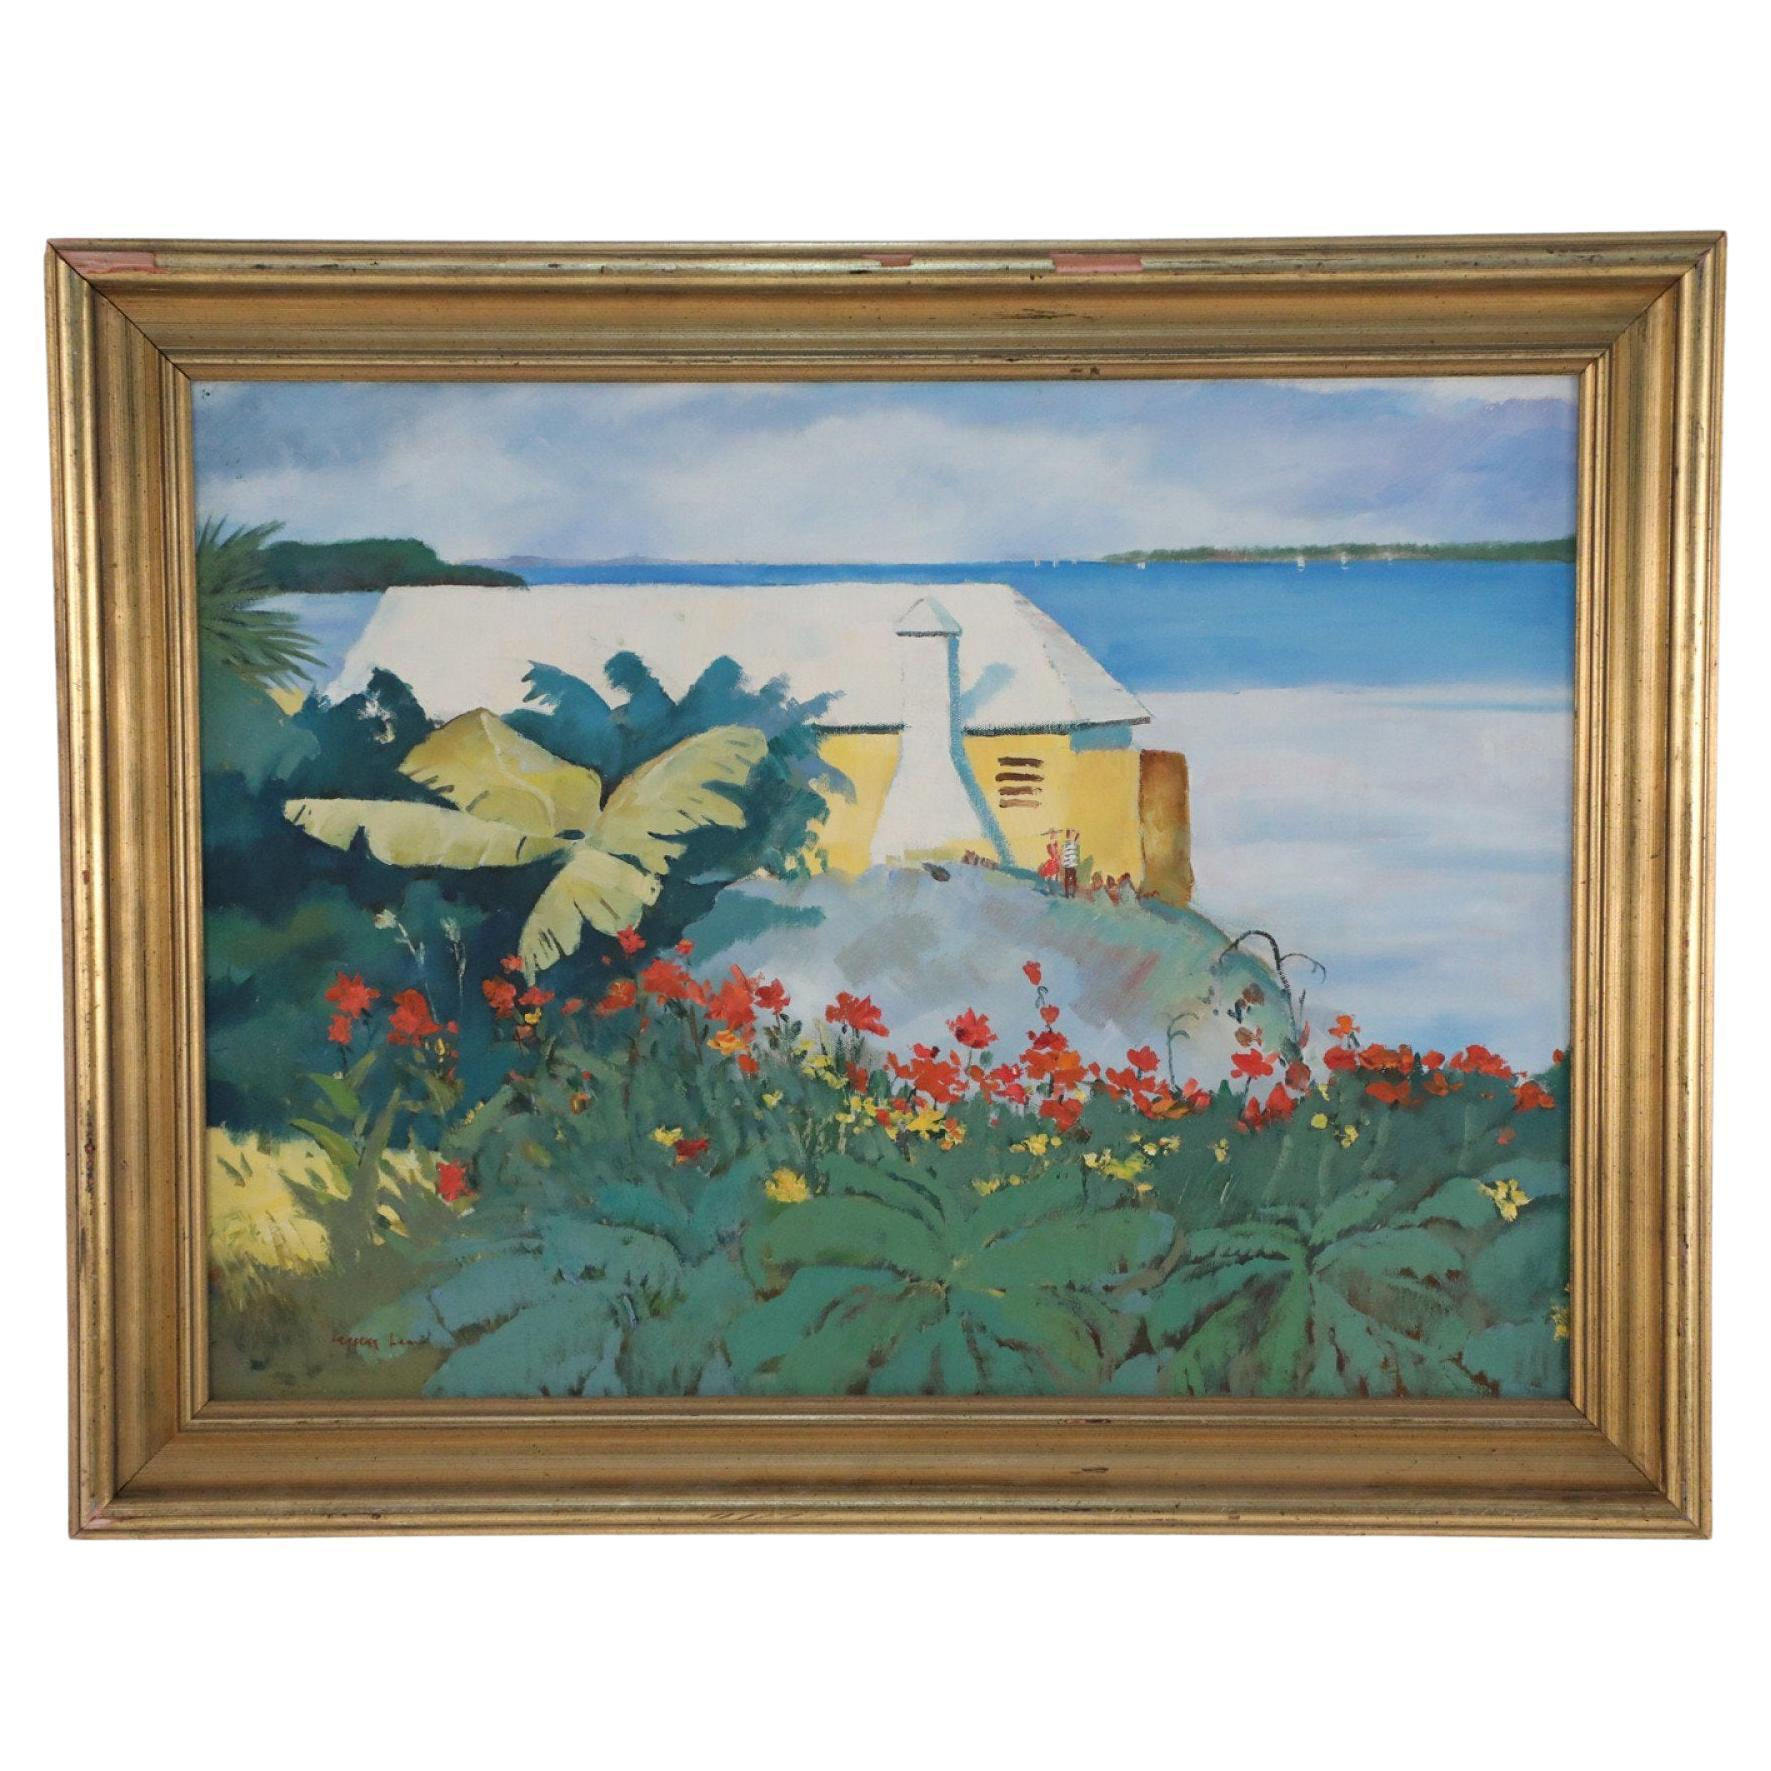 Framed Tropical Seascape Oil Painting